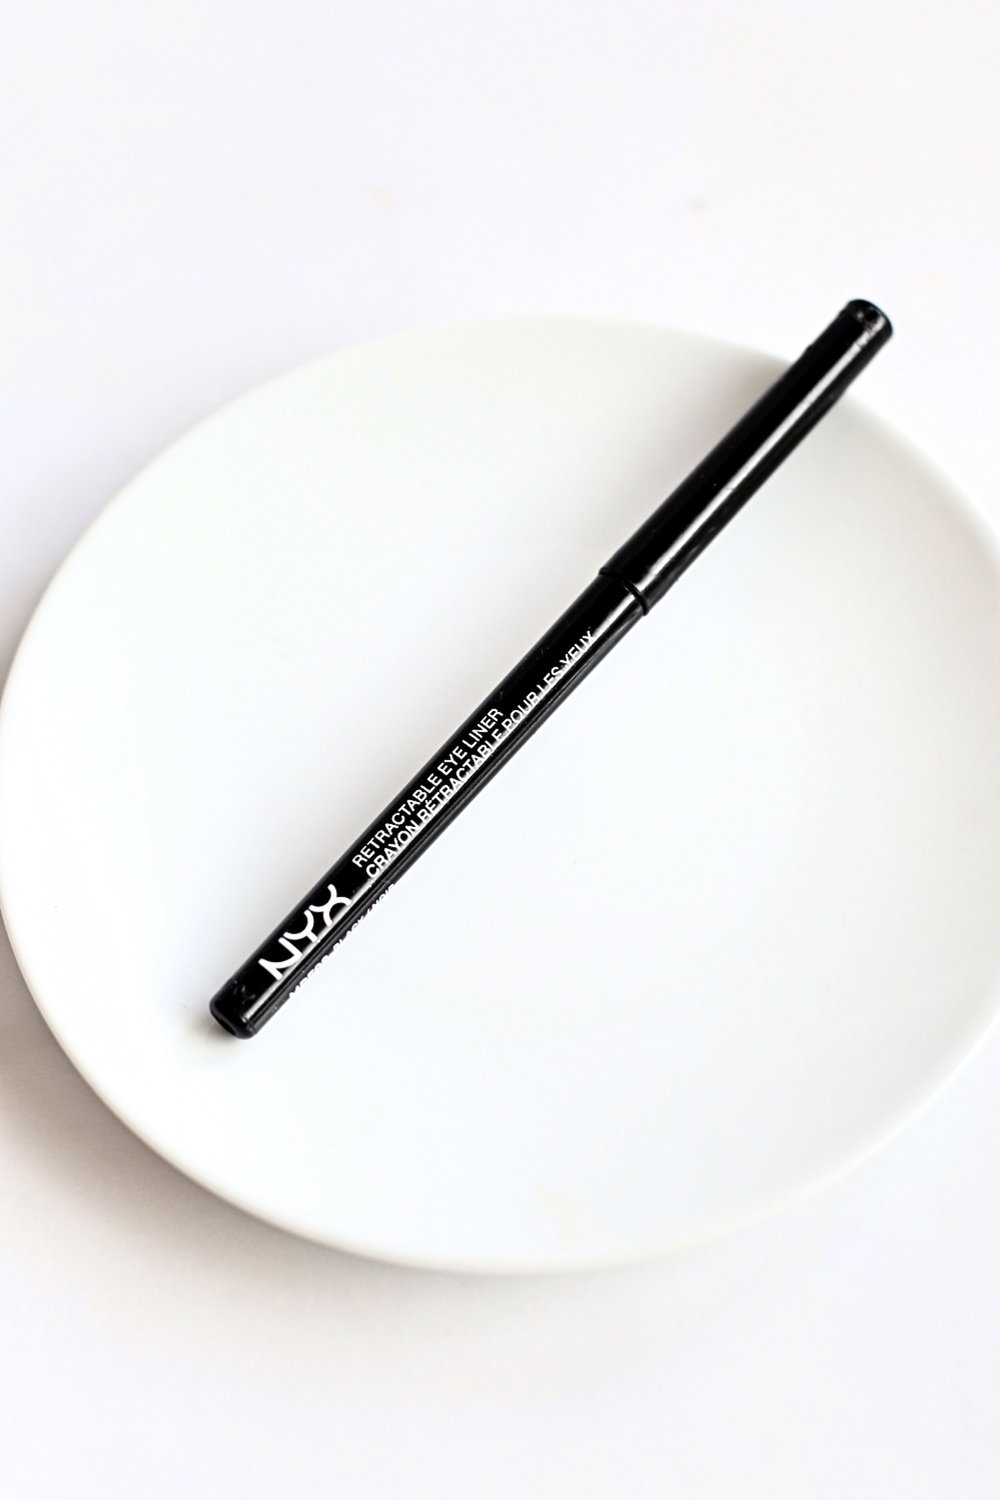 My Favorite Drugstore Makeup Products - NYX Eye Liner | TrufflesandTrends.com